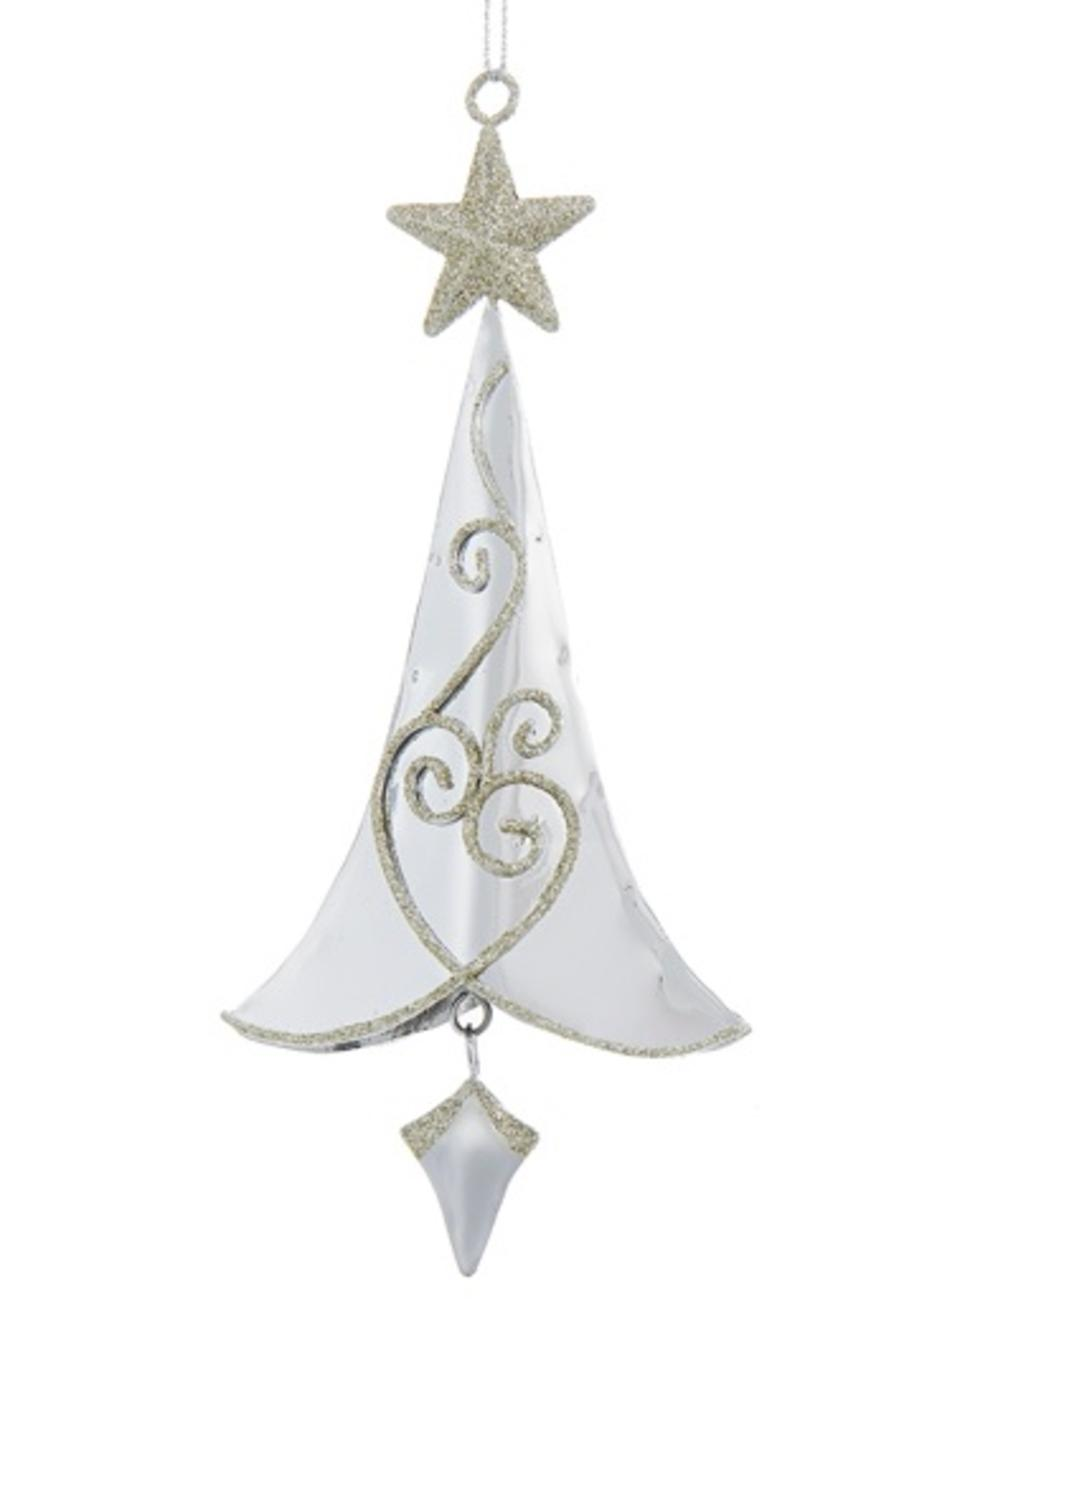 6 5 Silver Metal Tree With Gold Swirls And Star Hanging Christmas Ornament